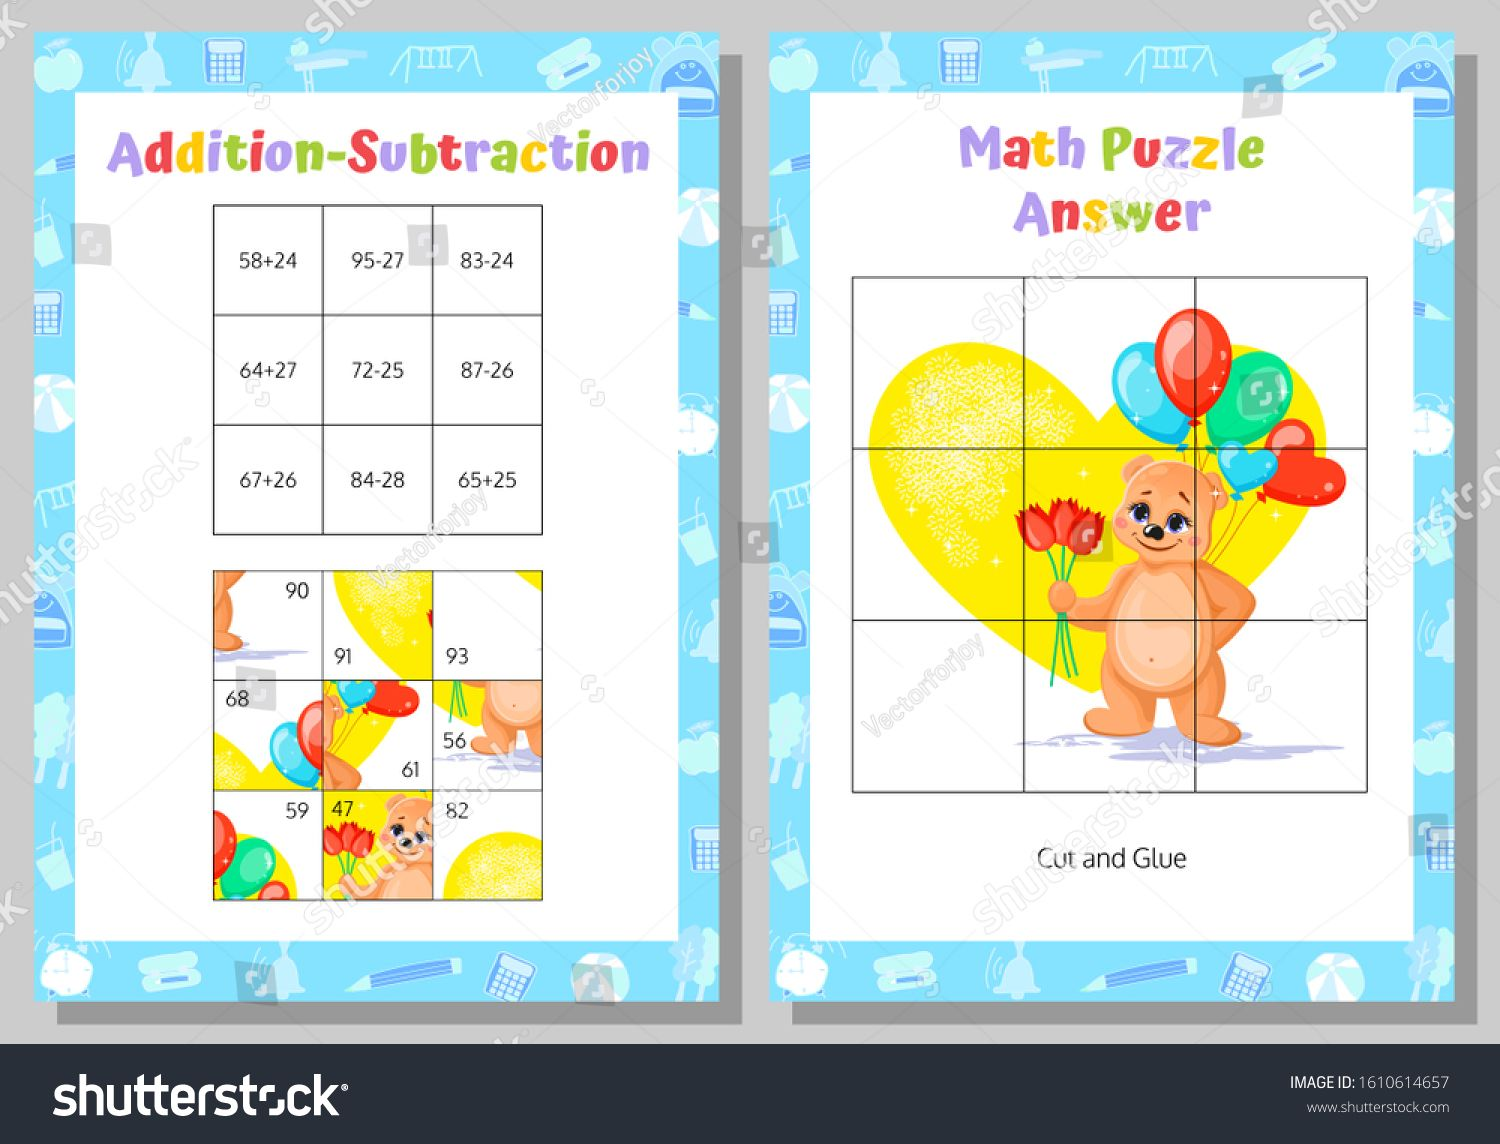 Addition Subtraction Math Puzzle Worksheet Educational Game Mathematical Game Vector Illustration Ad Maths Puzzles Subtraction Addition And Subtraction Math addition puzzle worksheets